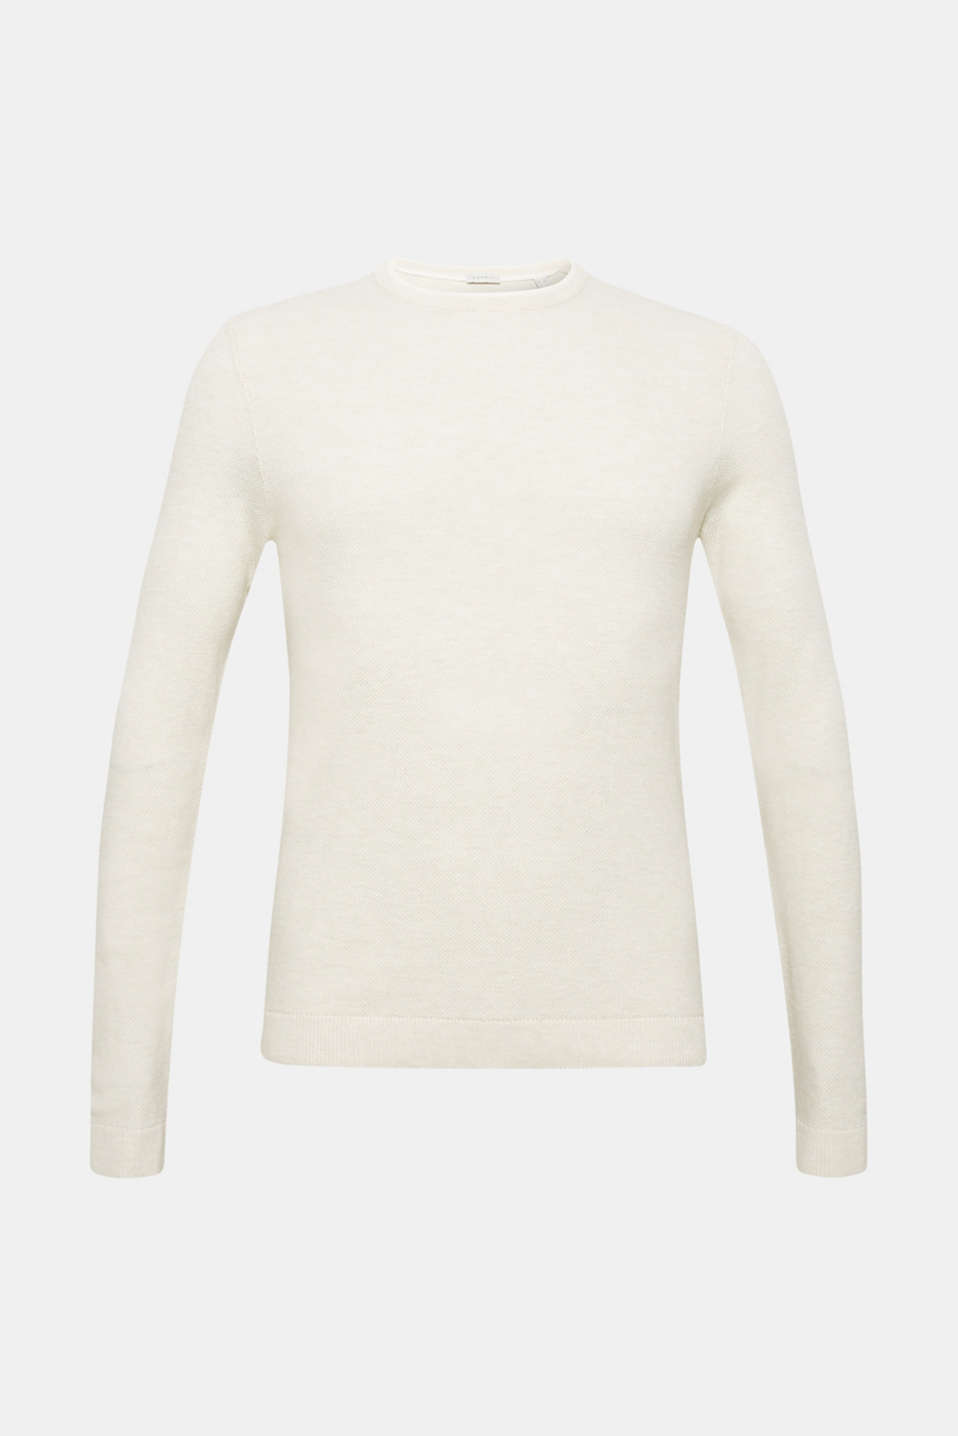 Textured jumper in 100% cotton, OFF WHITE, detail image number 7